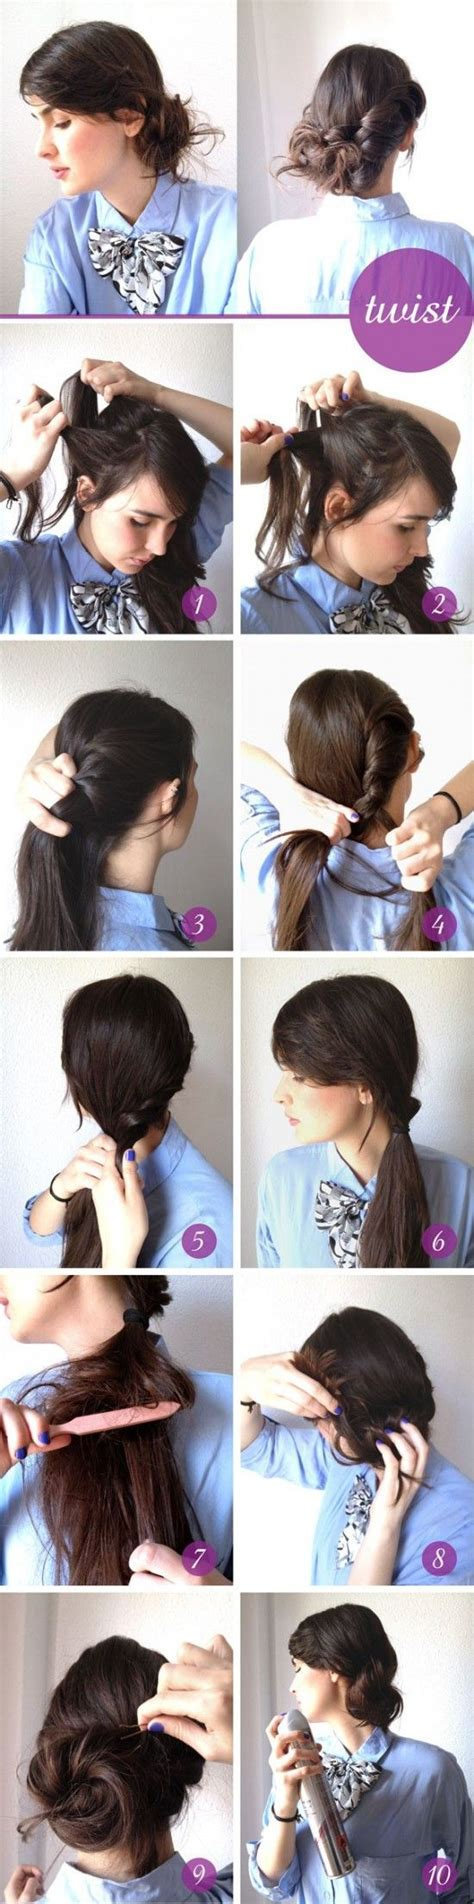 hairstyles ideas trends good fashion cute hairstyles for how to style the messy twist updo hairstyle hairstyle